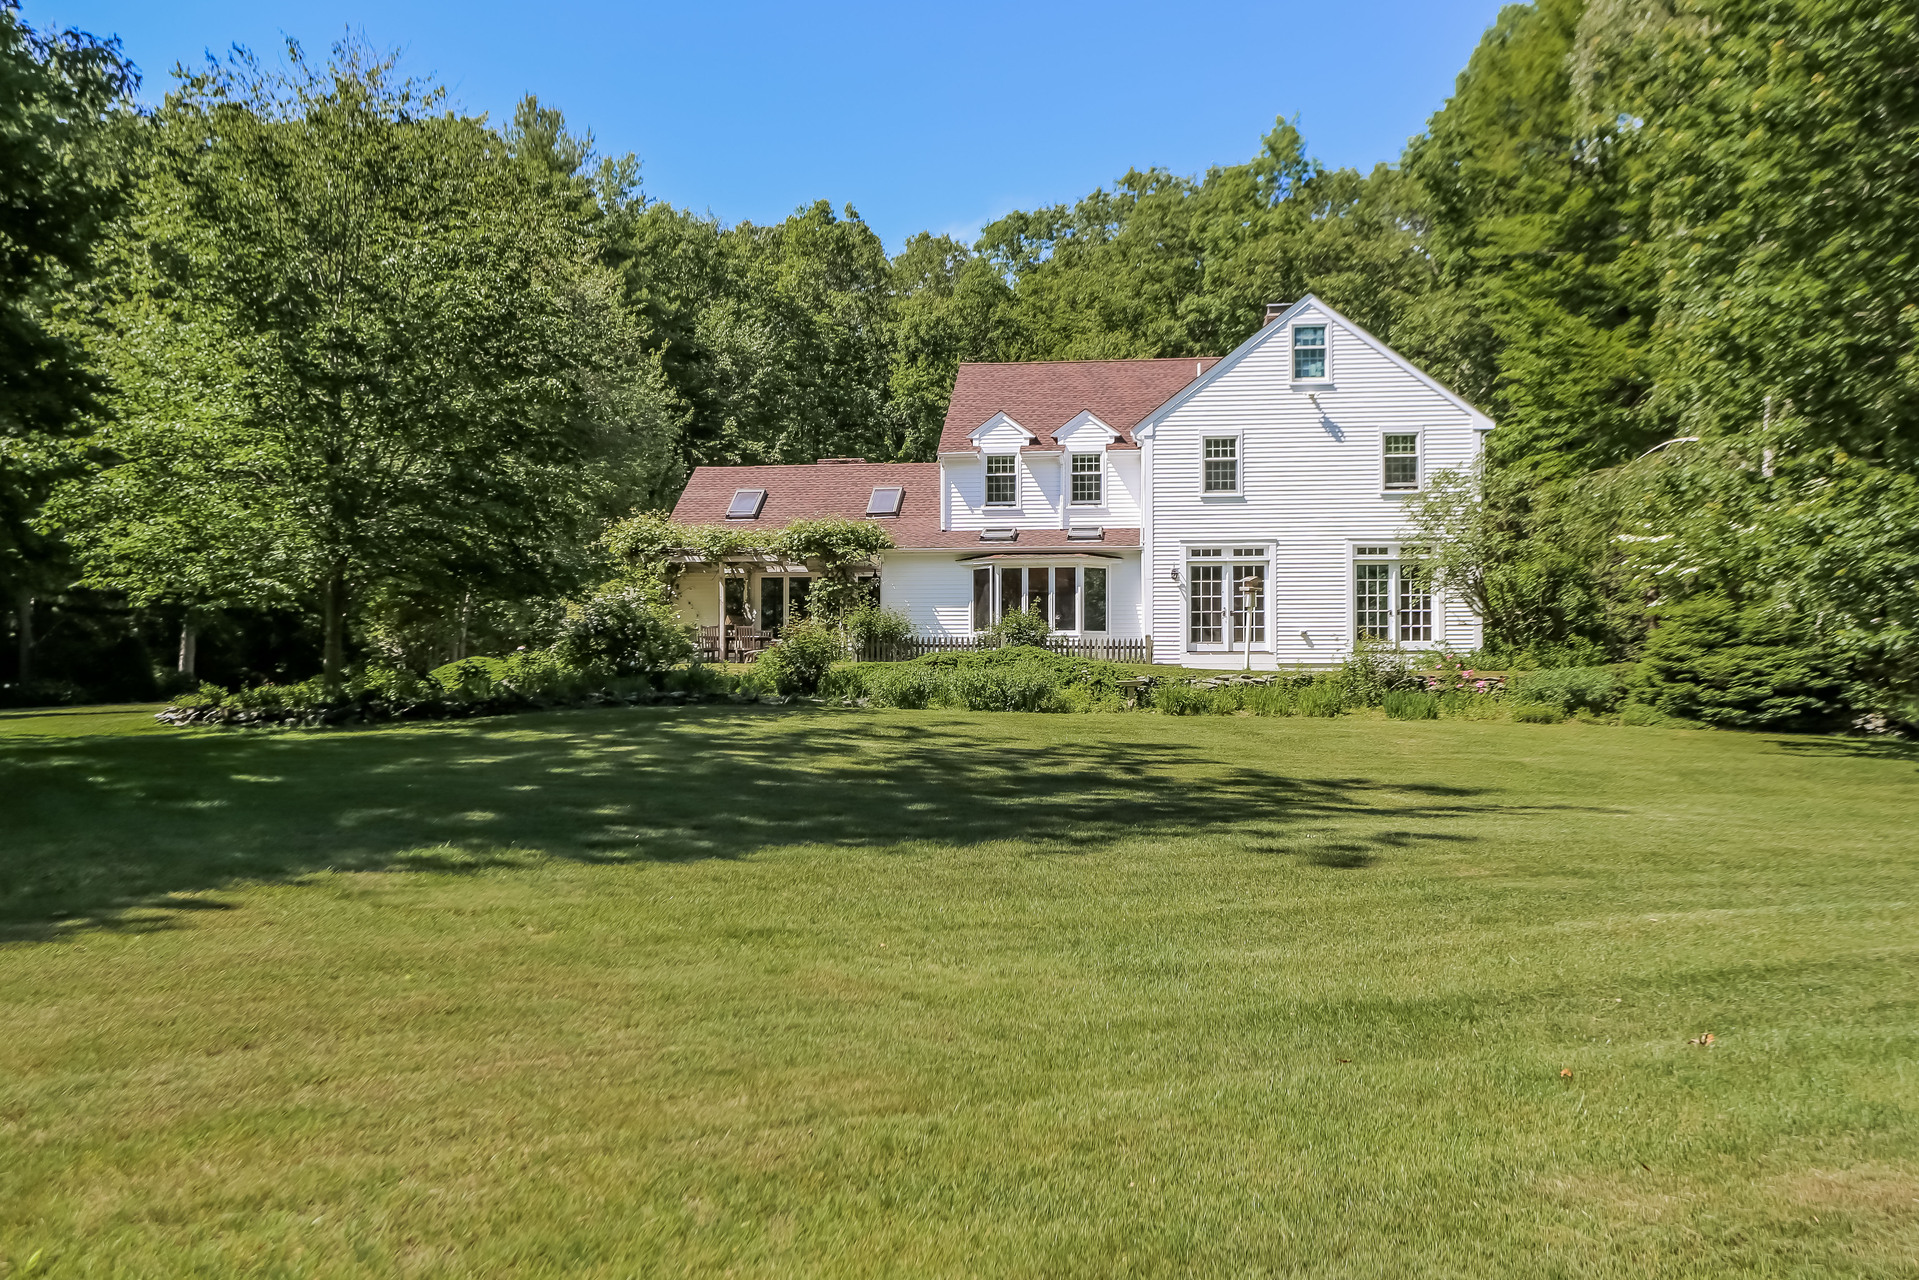 Single Family Home for Sale at 35 Acre Quintessential Retreat 427 Main Street Norwell, Massachusetts 02061 United States